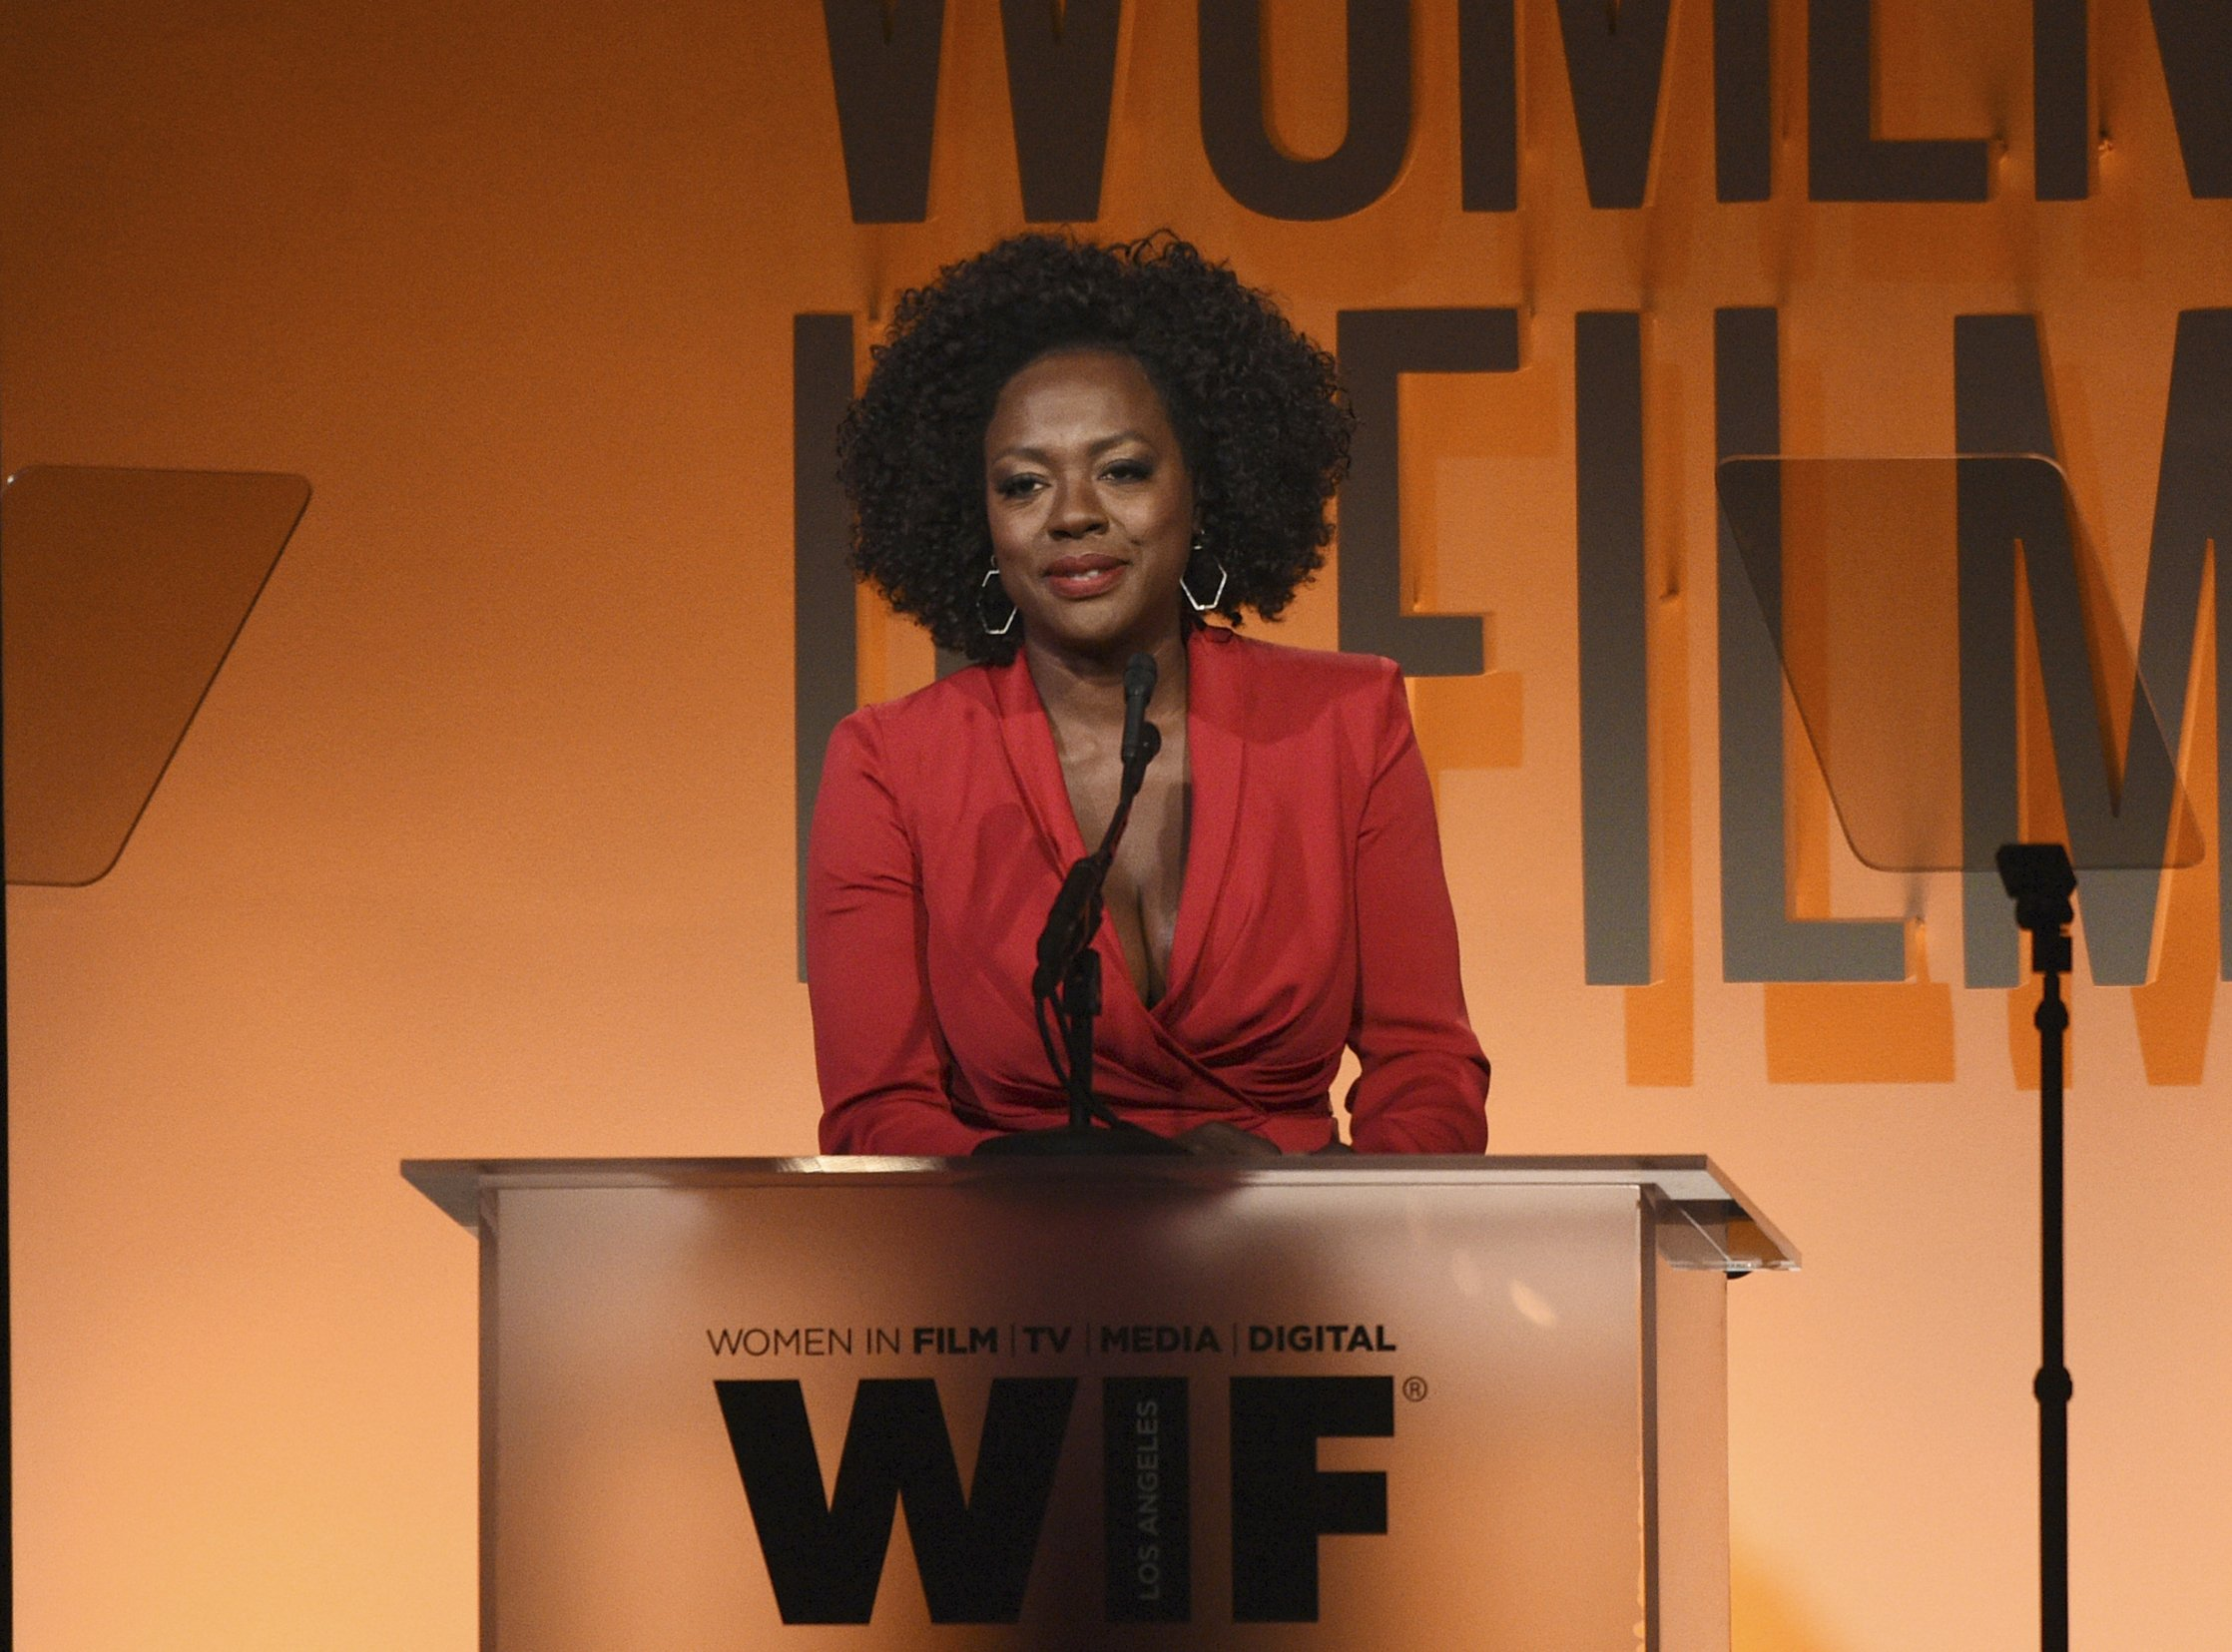 Viola Davis determined to go above and beyond on diversity